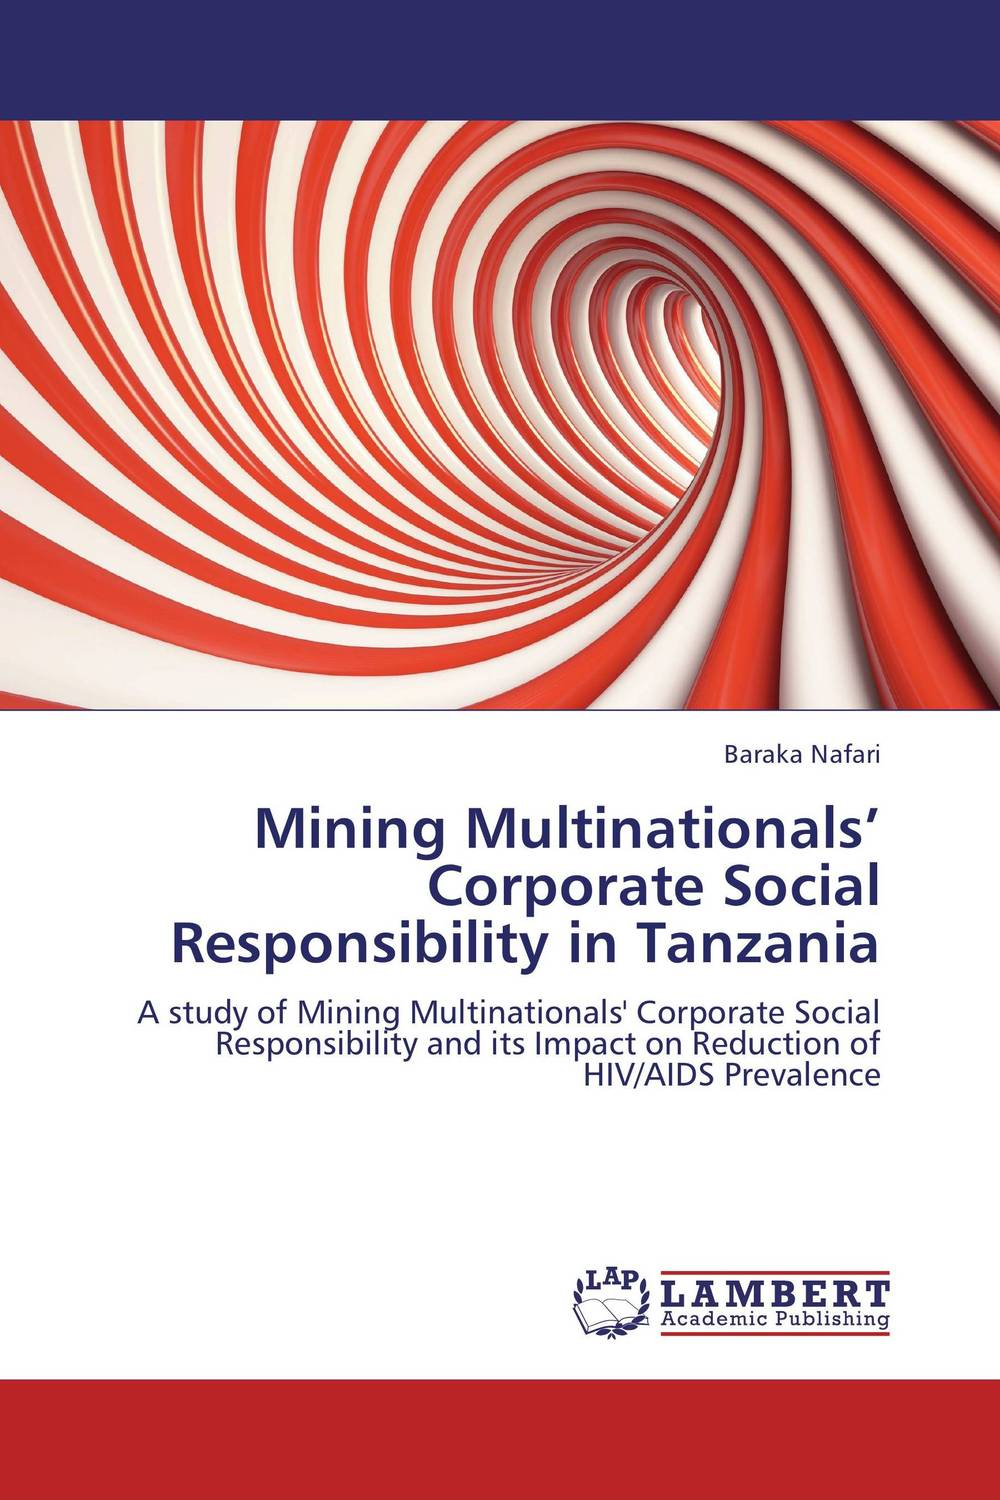 Mining Multinationals' Corporate Social Responsibility in Tanzania corporate governance and firm value